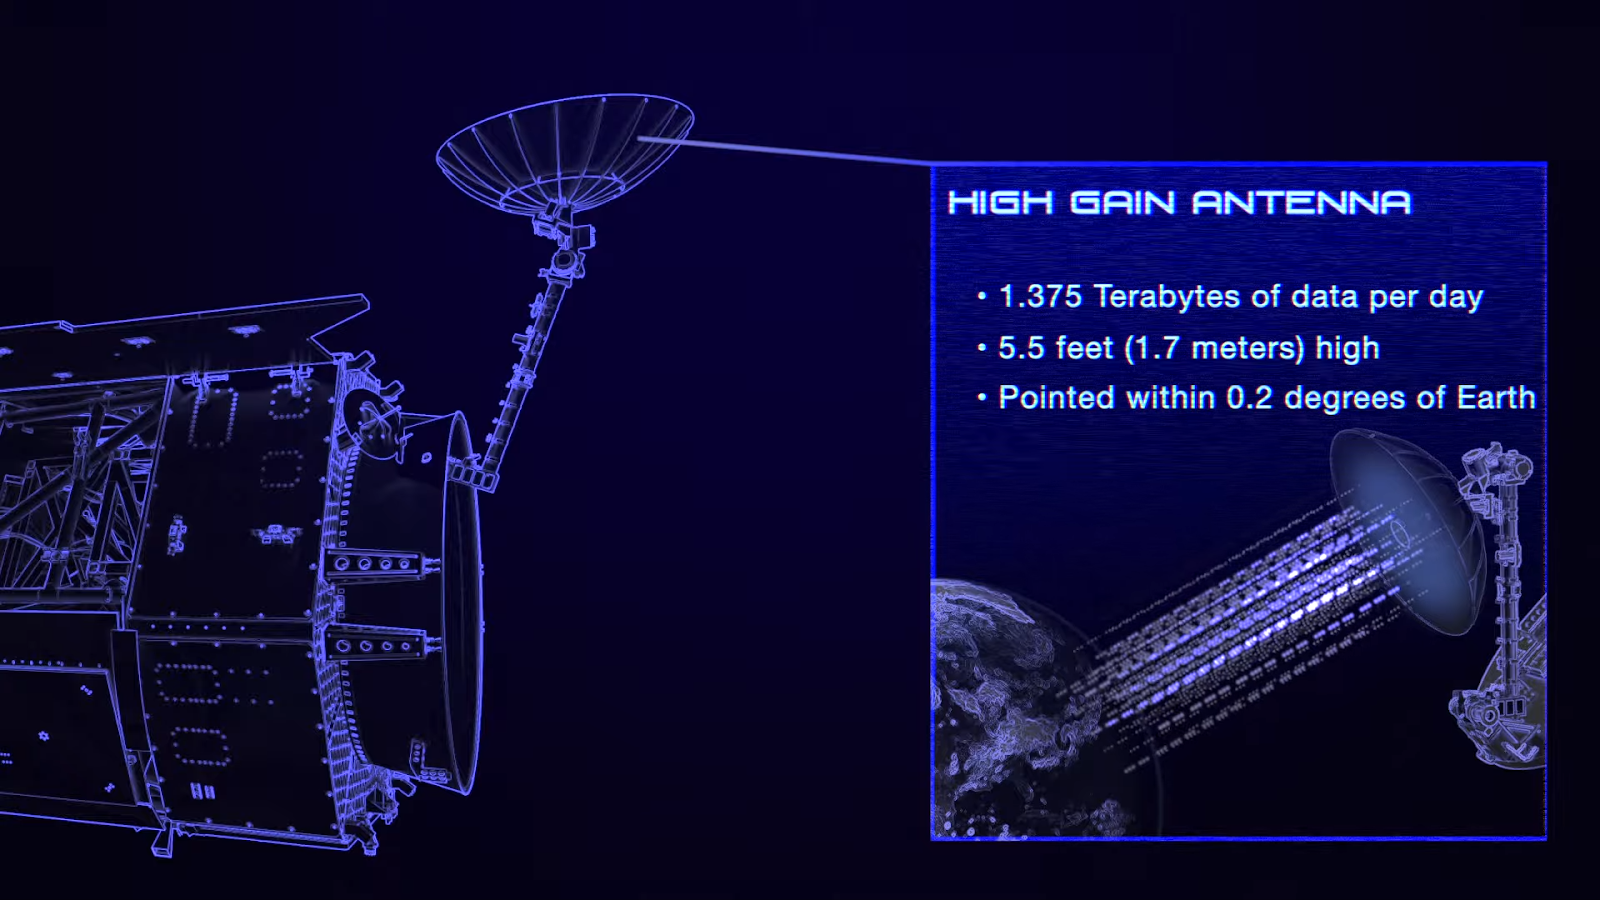 High Gain Antenna